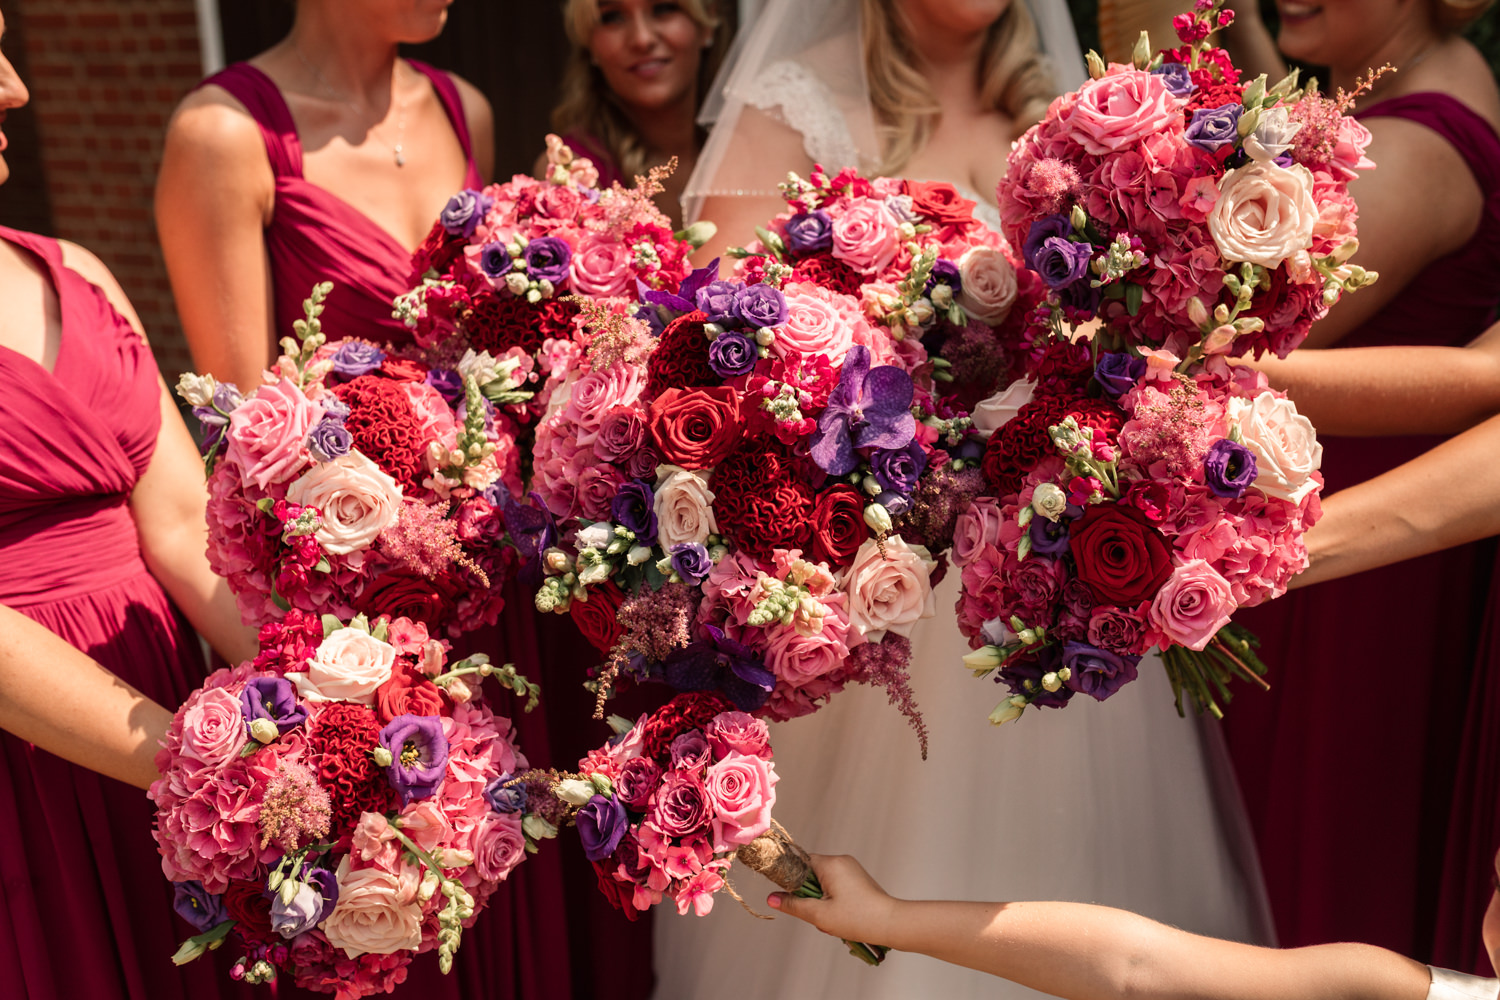 Flower filled summer wedding with pink hydrangeas, photo credit Becky Harley Photography (12)